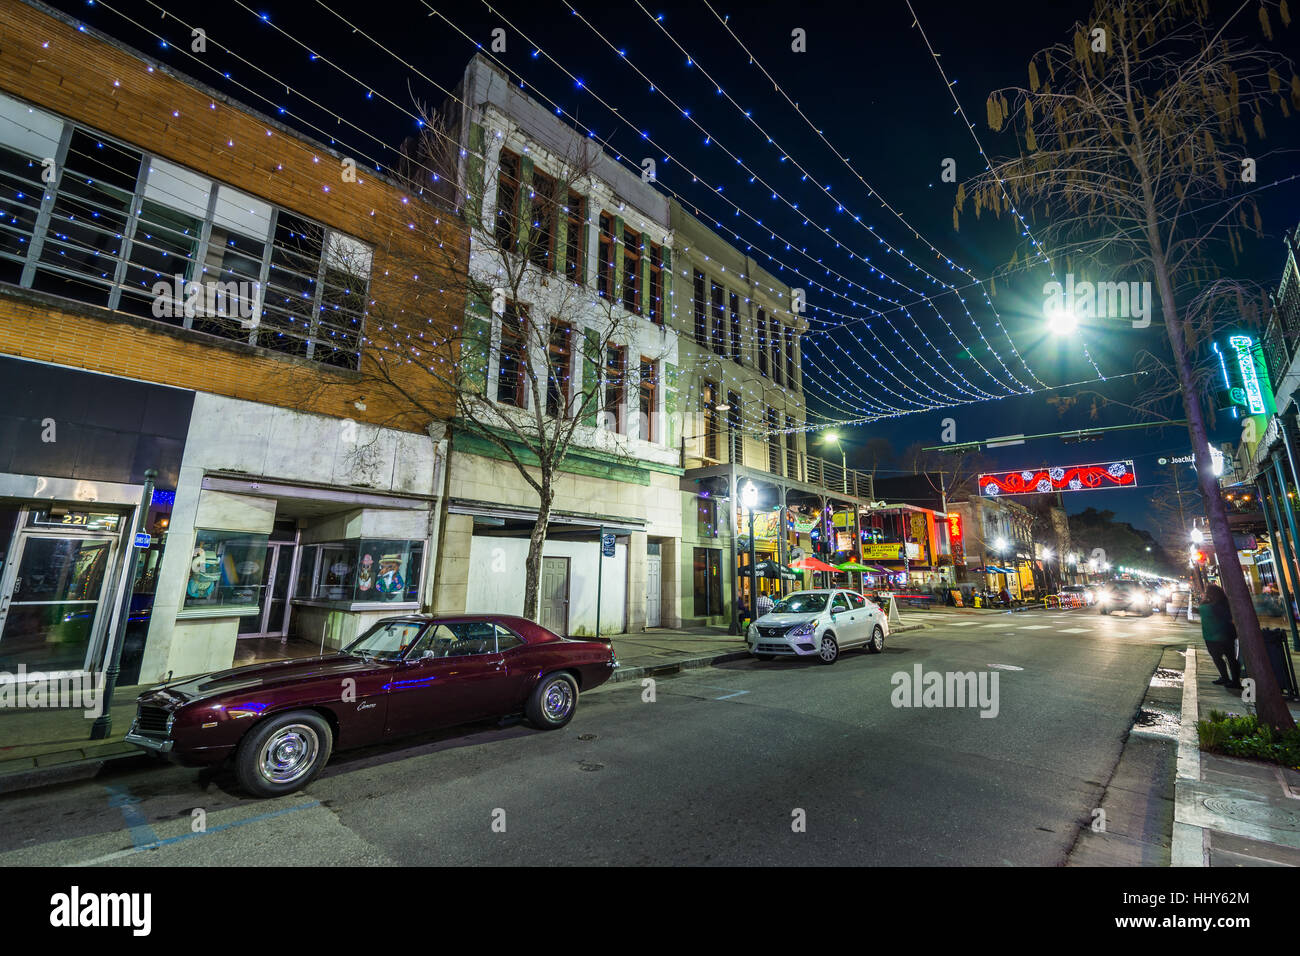 String Lights Hung Over Dauphin Street And Buildings In Downtown